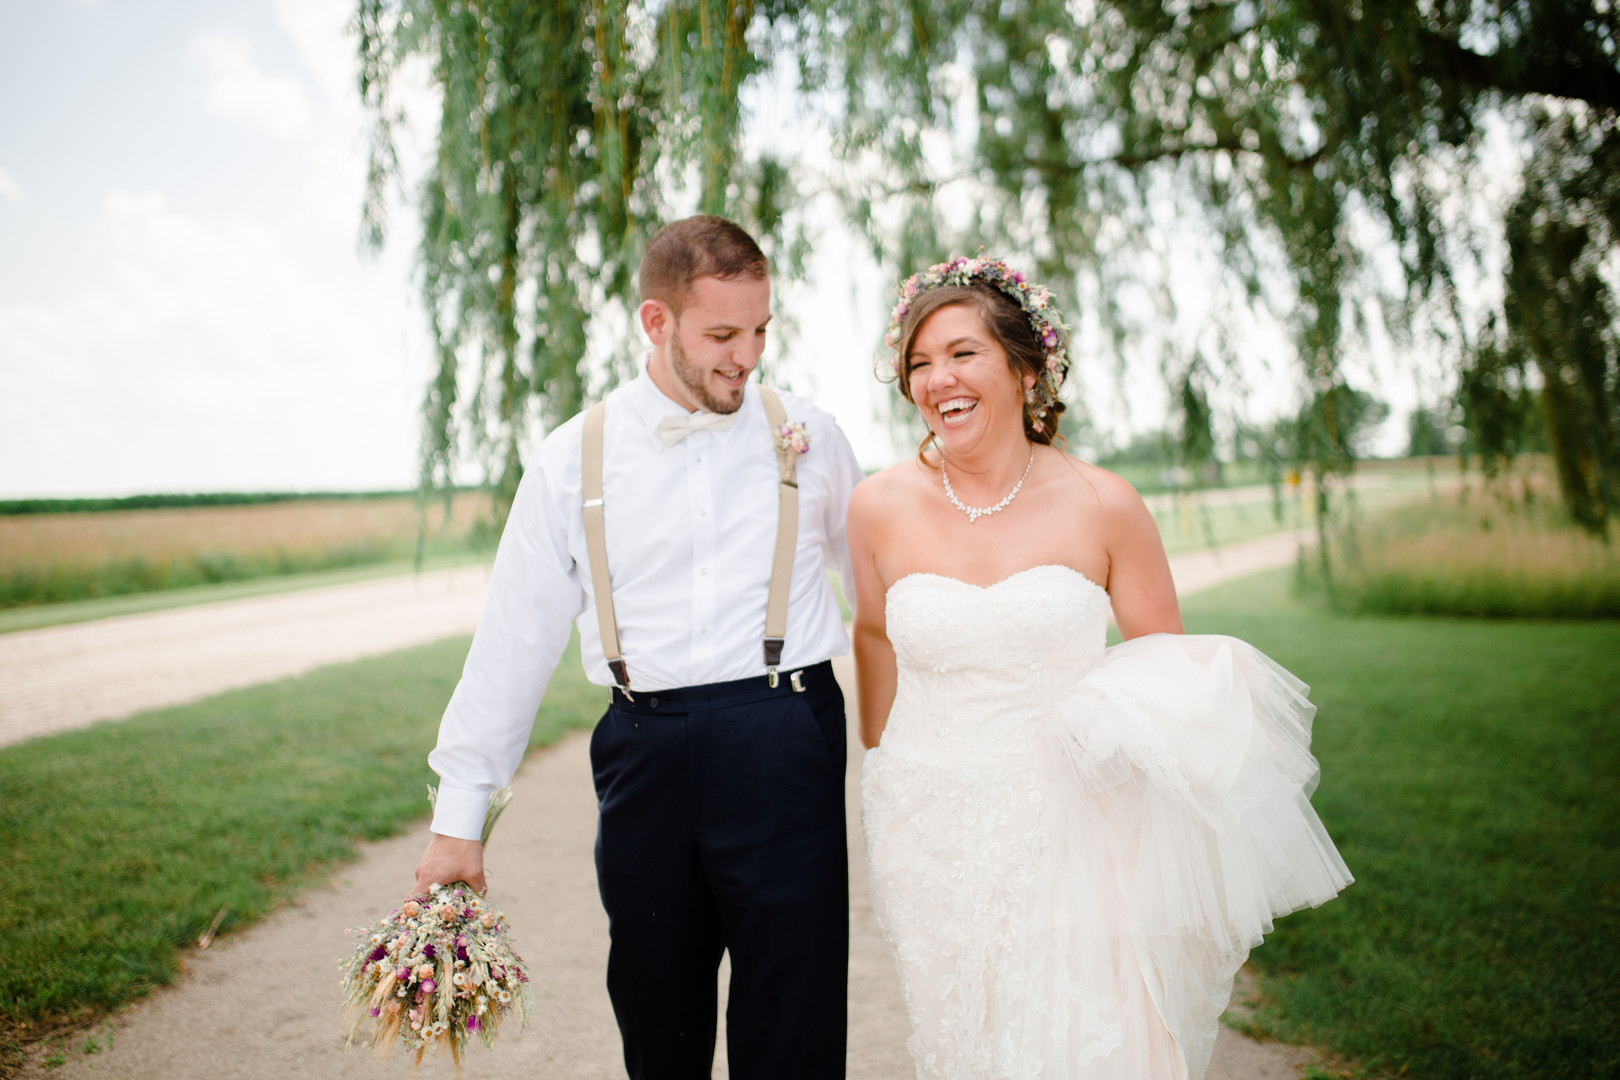 Outdoor wedding photos: Rustic country wedding in Minooka, IL captured by Katie Brsan Photography. Visit CHItheeWED.com for more wedding inspiration!